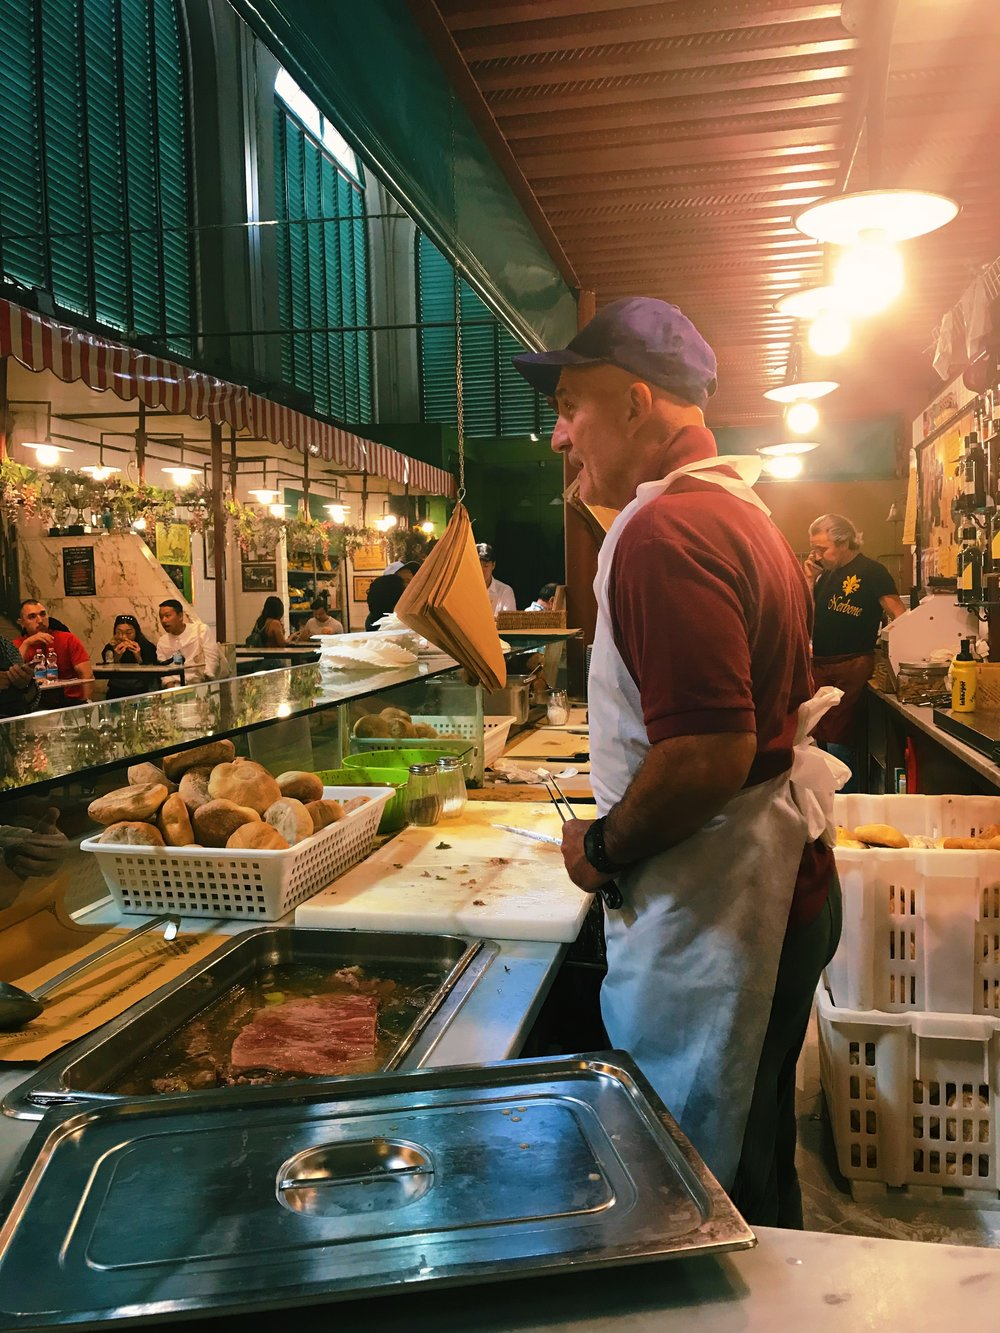 Even though these guys are very nice, as a vegetarian, I would not eat the sloppy meat sandwiches (bollito di Manzo) at Nerbone in the Central Market. But carnivores love them.